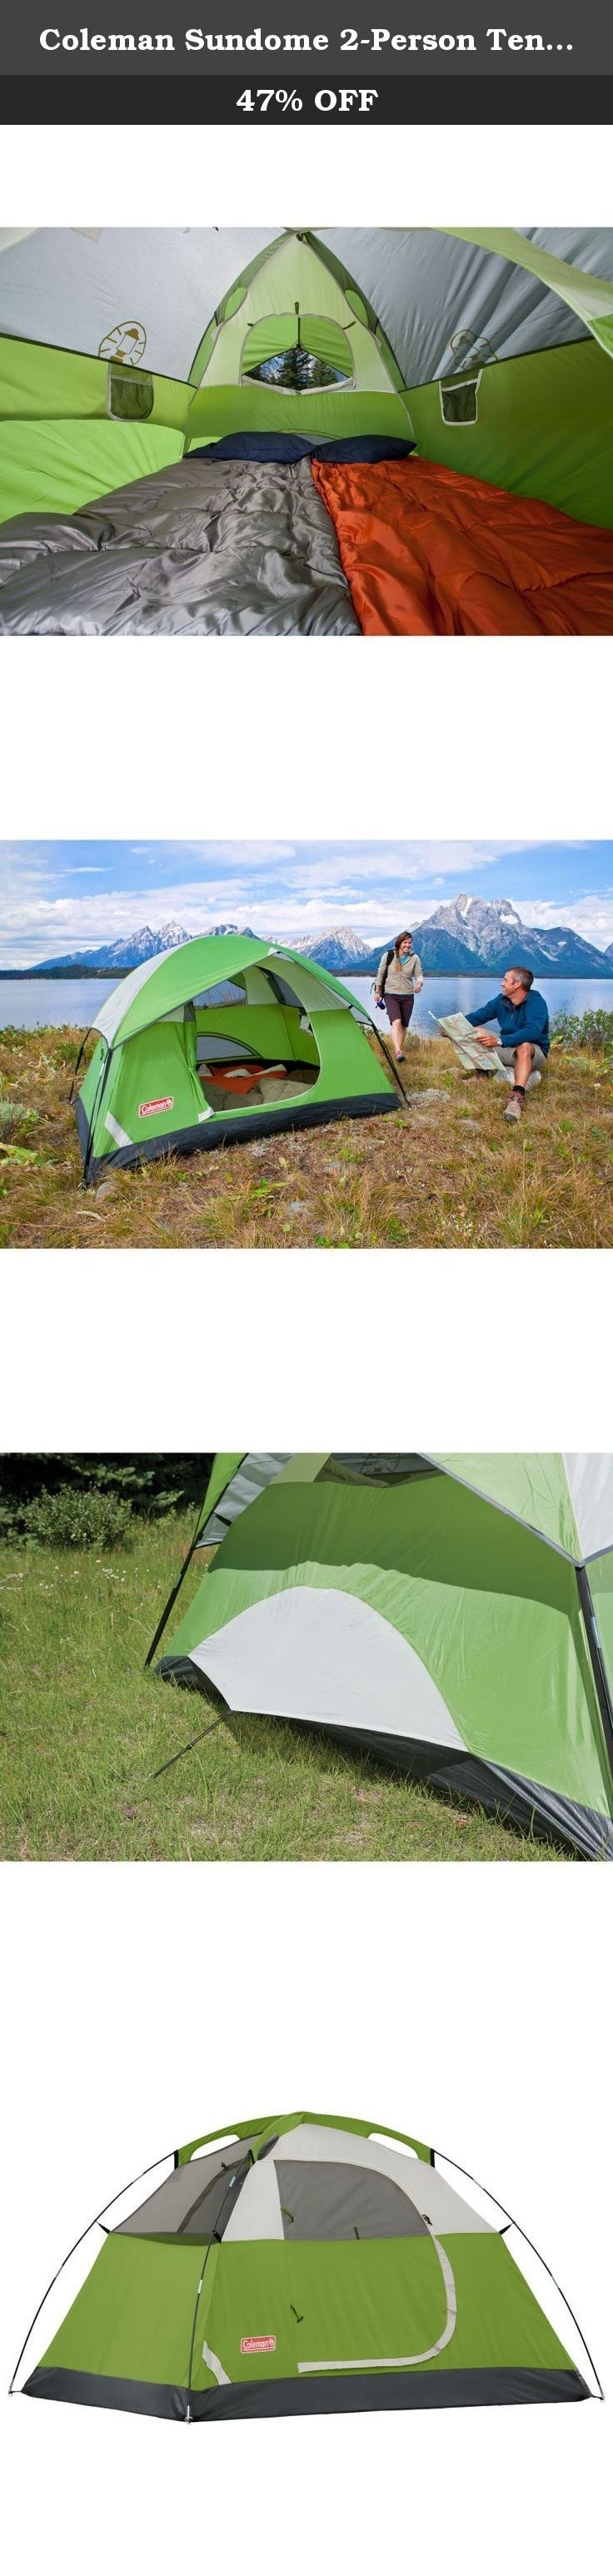 Coleman sundome 2 person tent green the coleman sundome tent is ideal for weekend car campers extended camping trips scout troops summer fun